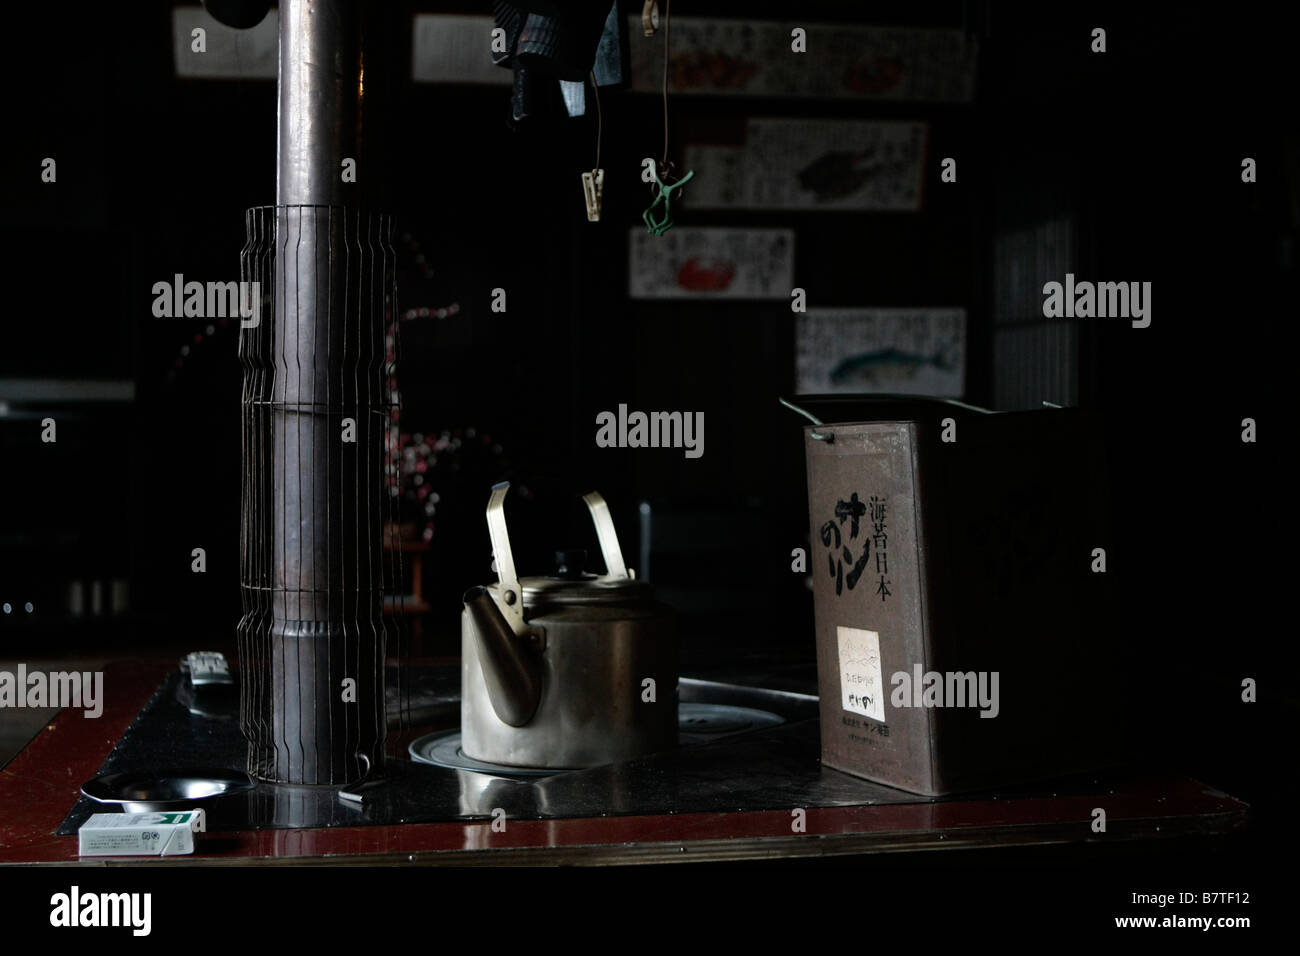 An old kettle and tea box on a stove in a traditional guesthouse in Shirikawa-Go, Japan - Stock Image